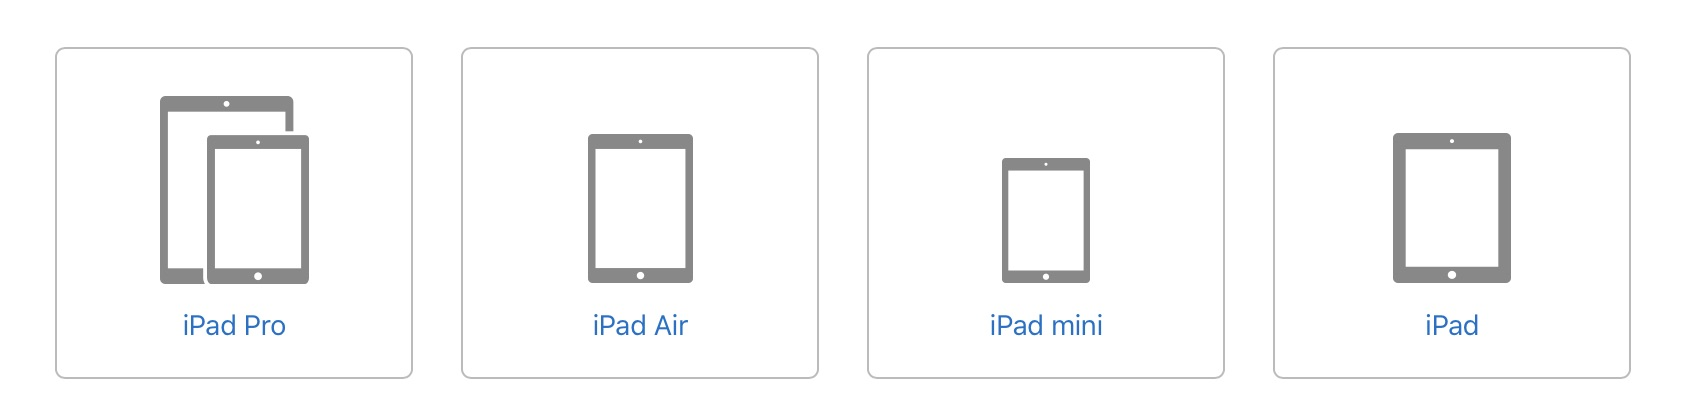 which iPad model